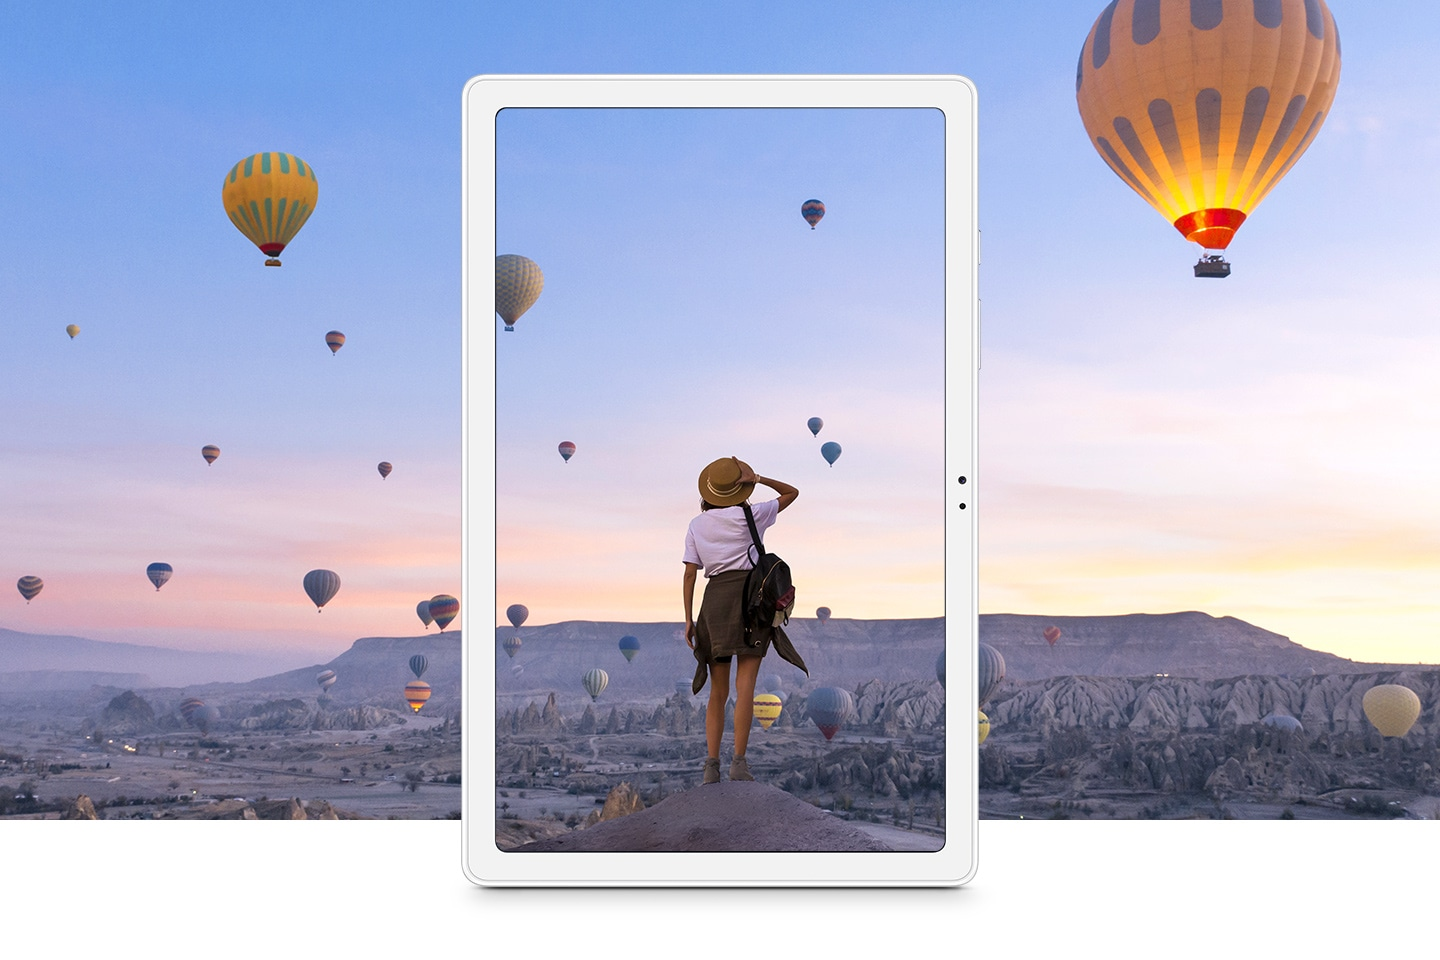 Galaxy Tab A7 depicts a woman overlooking a canyon filled with flying hot air balloons at dawn.